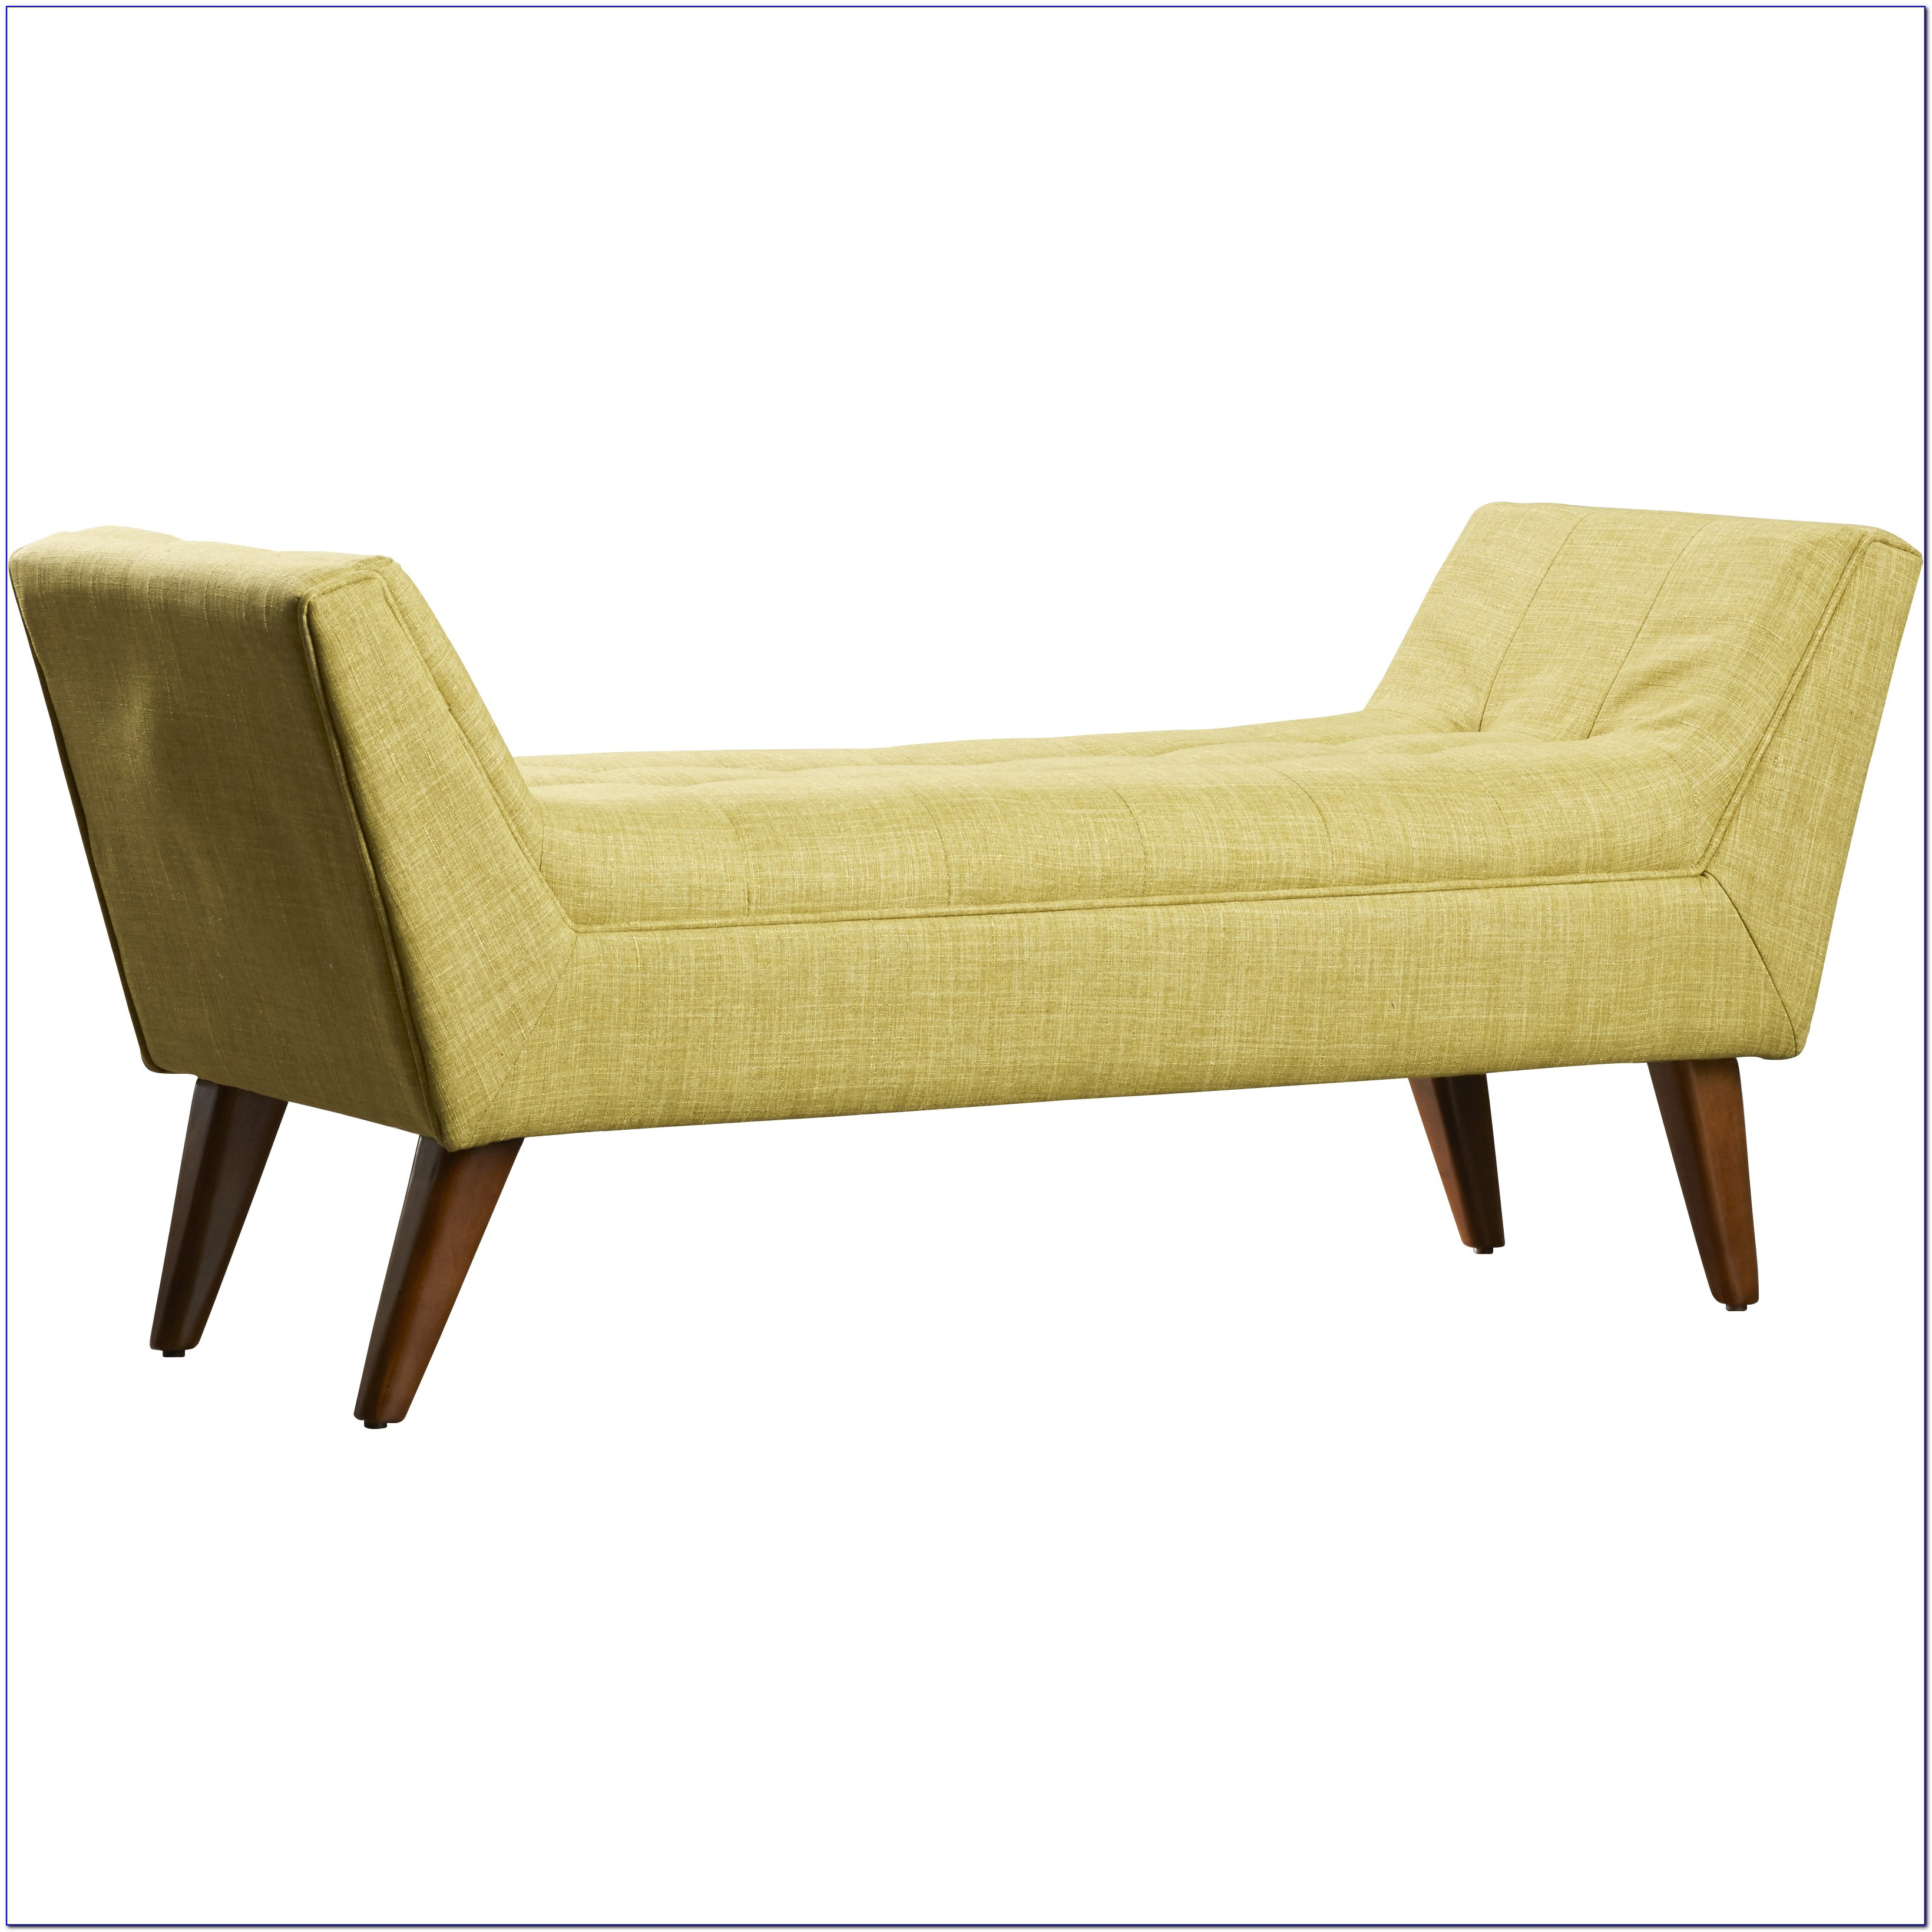 Tufted Storage Bench With Arms